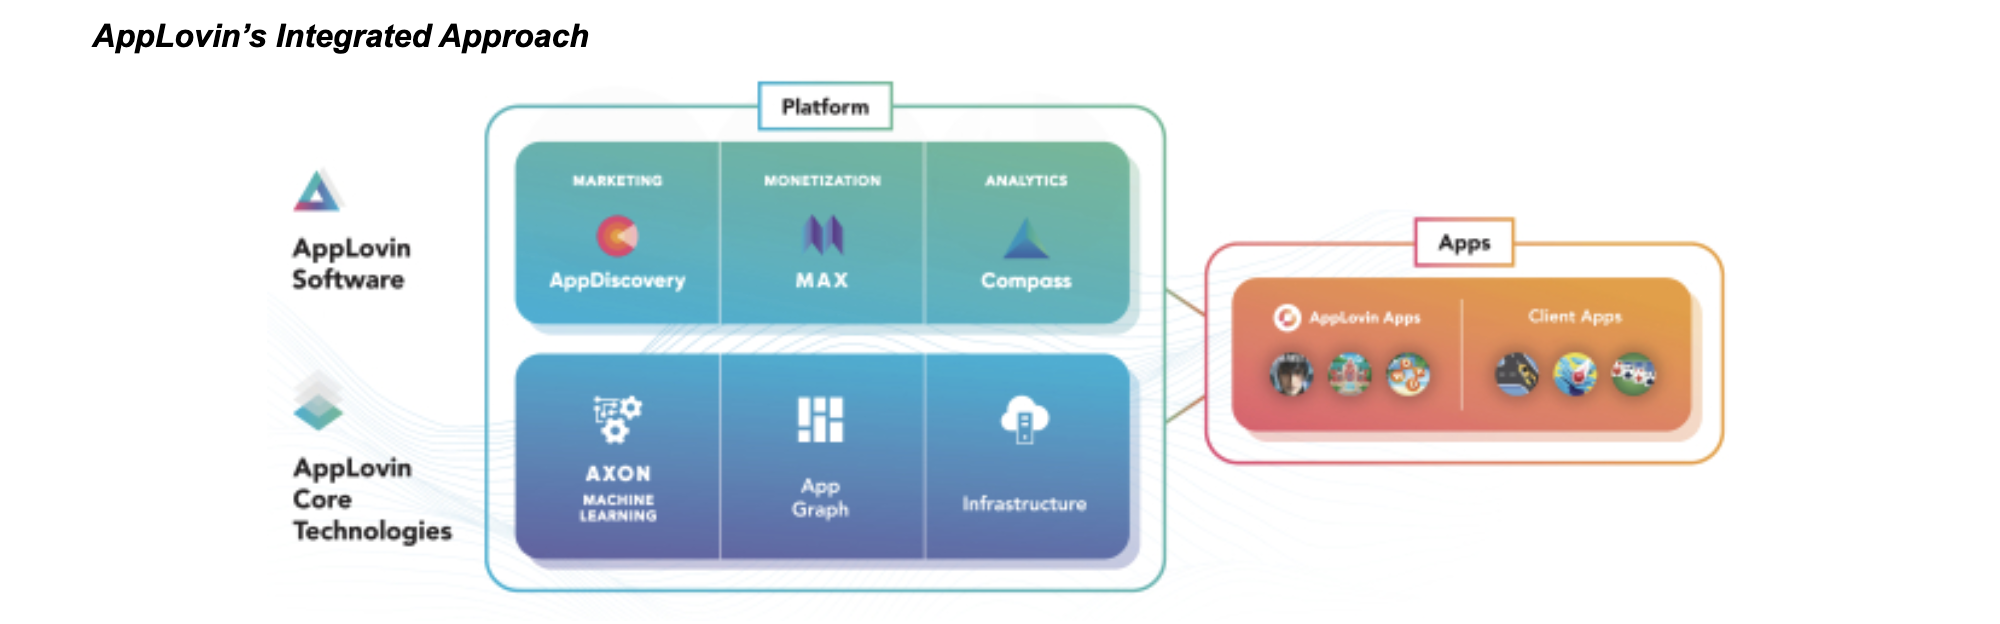 AppLovin's integrated approach.png